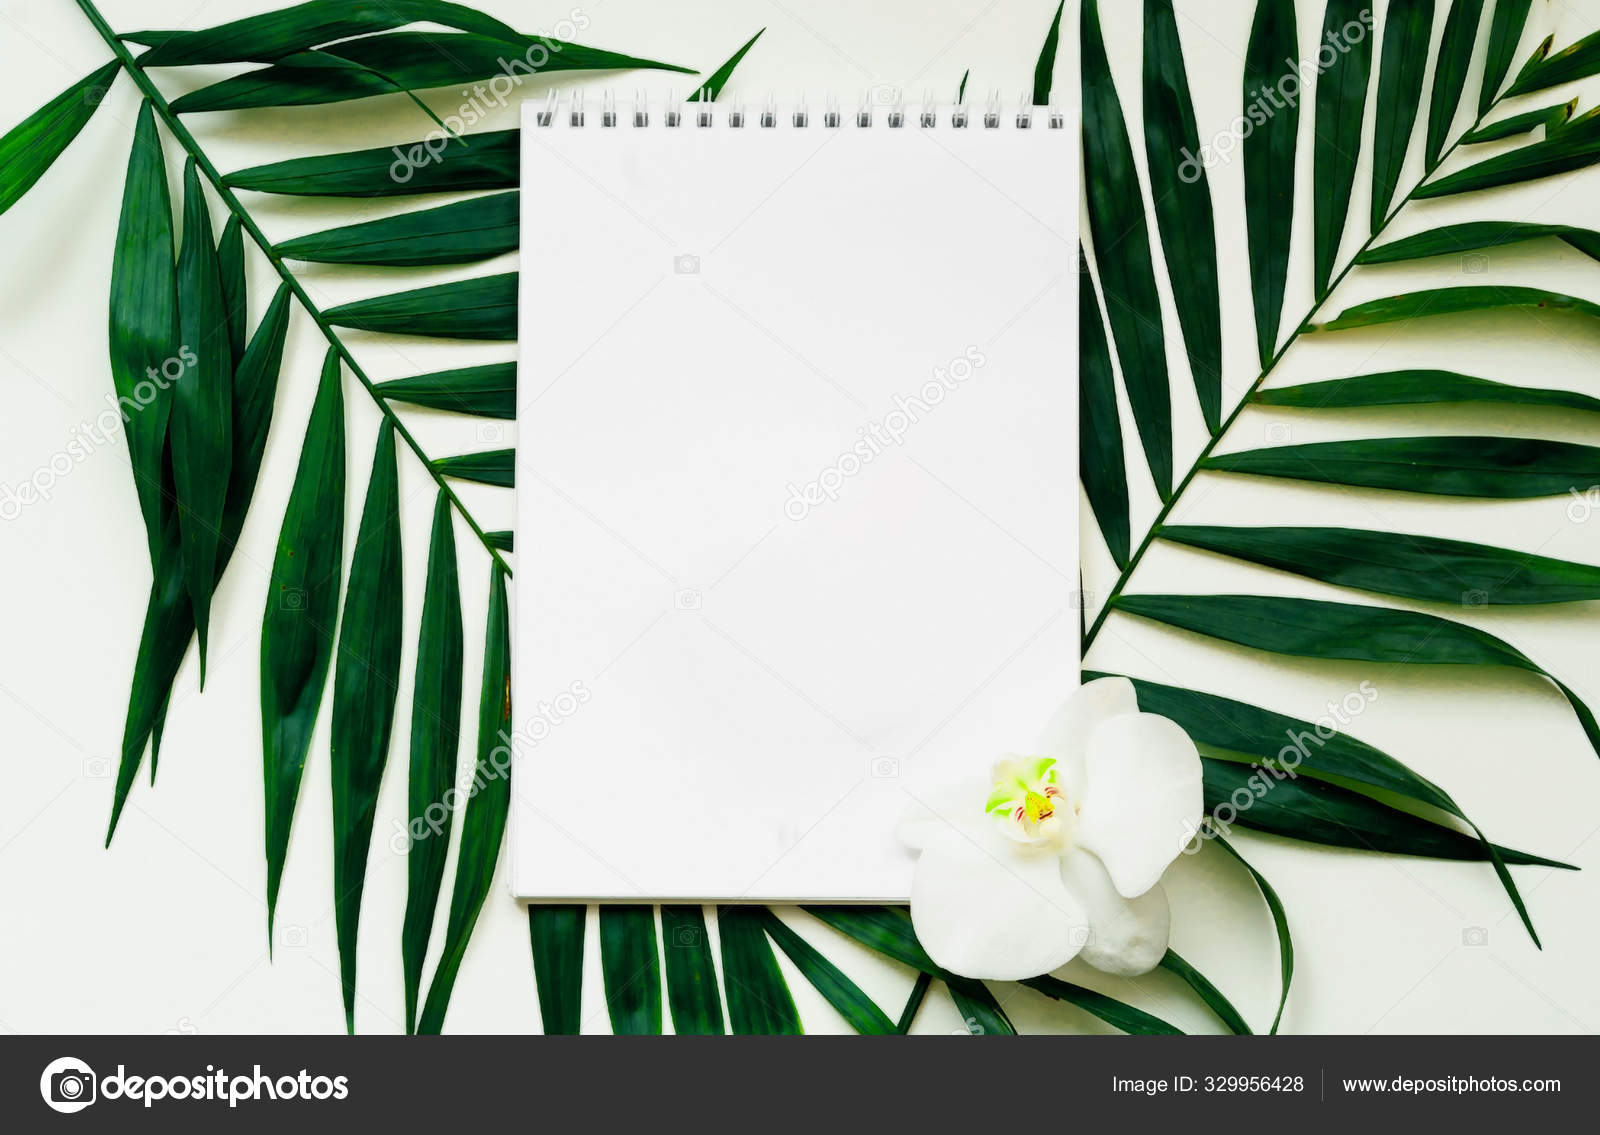 Tropical Background Notebook On A White Background With Palm Leaves Close Up Stock Photo C Ton Company Ukr Net 329956428 2020 popular 1 trends in home & garden, home improvement with tropical leaf painting home and 1. https depositphotos com 329956428 stock photo tropical background notebook on a html